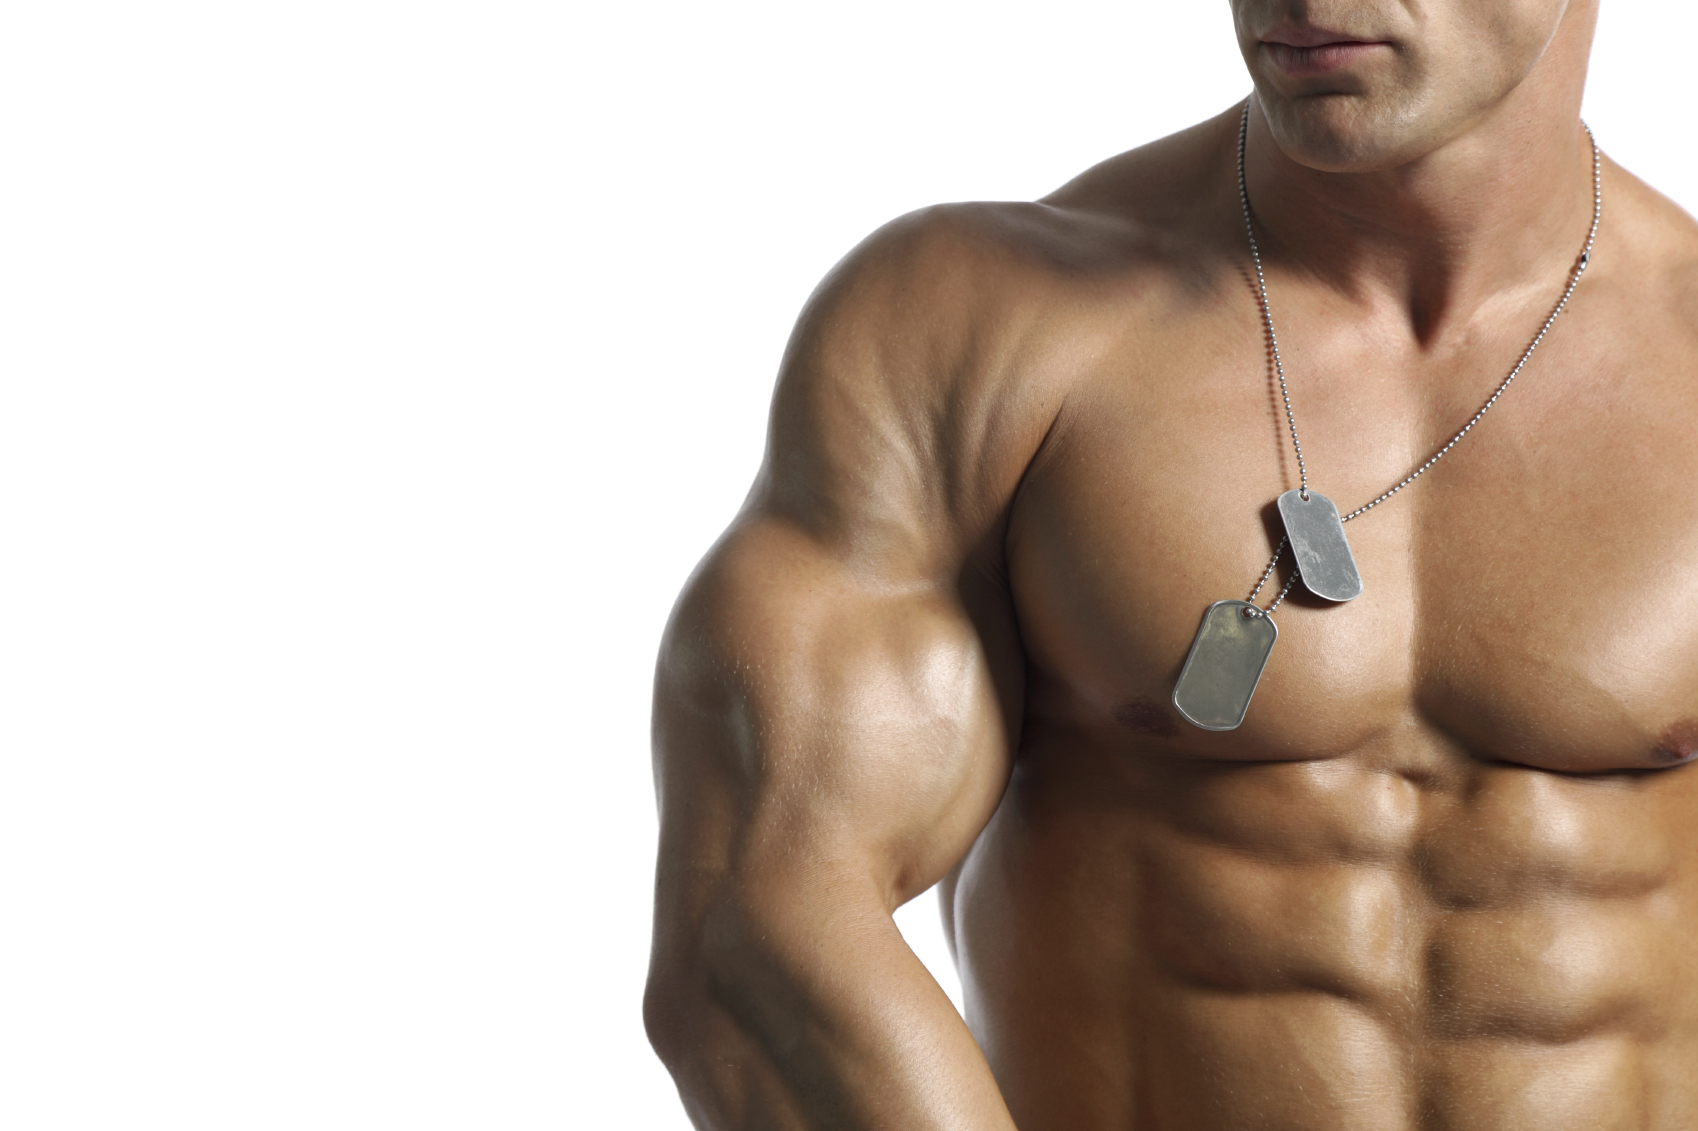 The 3-day Military Diet – a Beginner's Guide